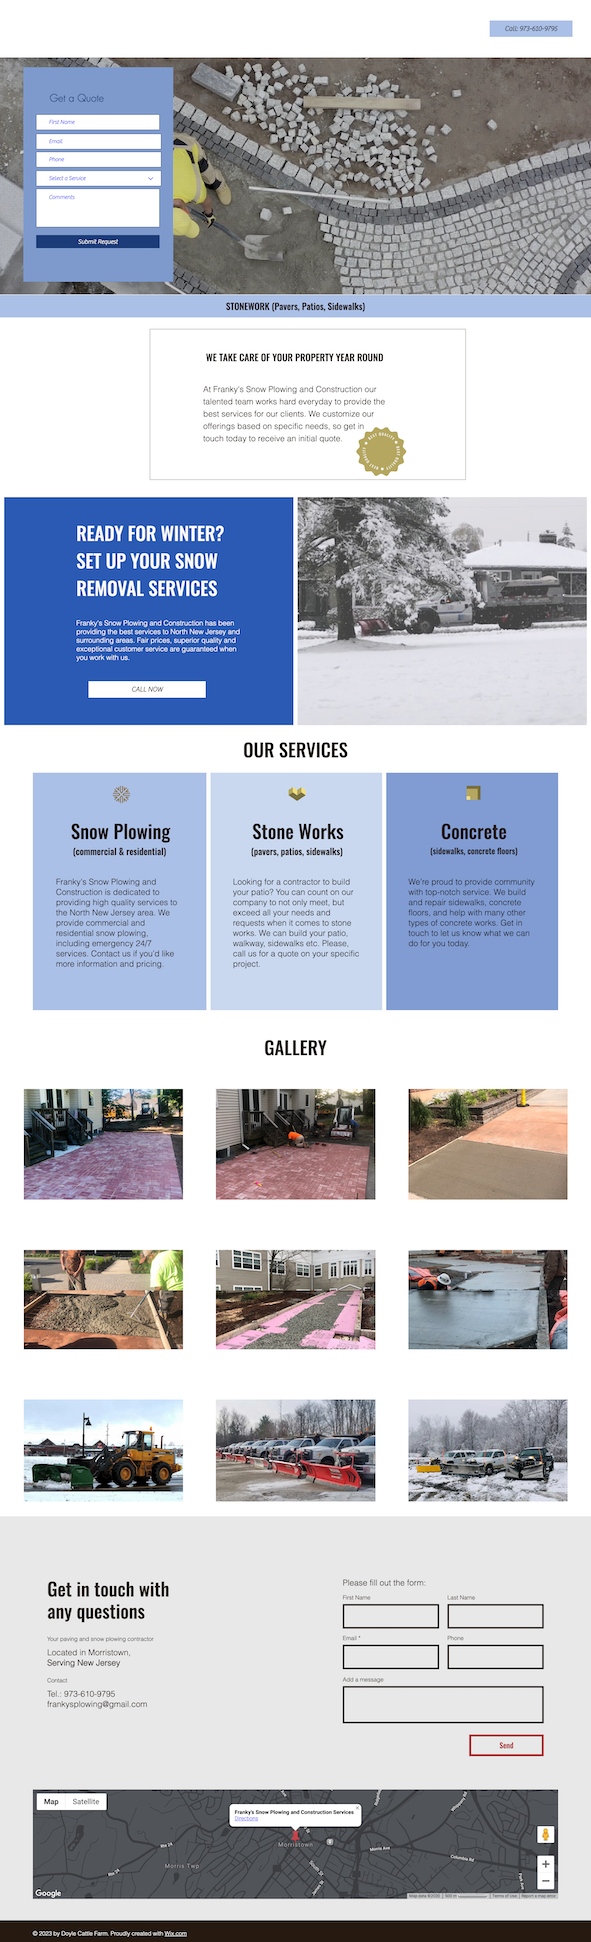 Web Design for Snow Plowing and Construction company in NJ